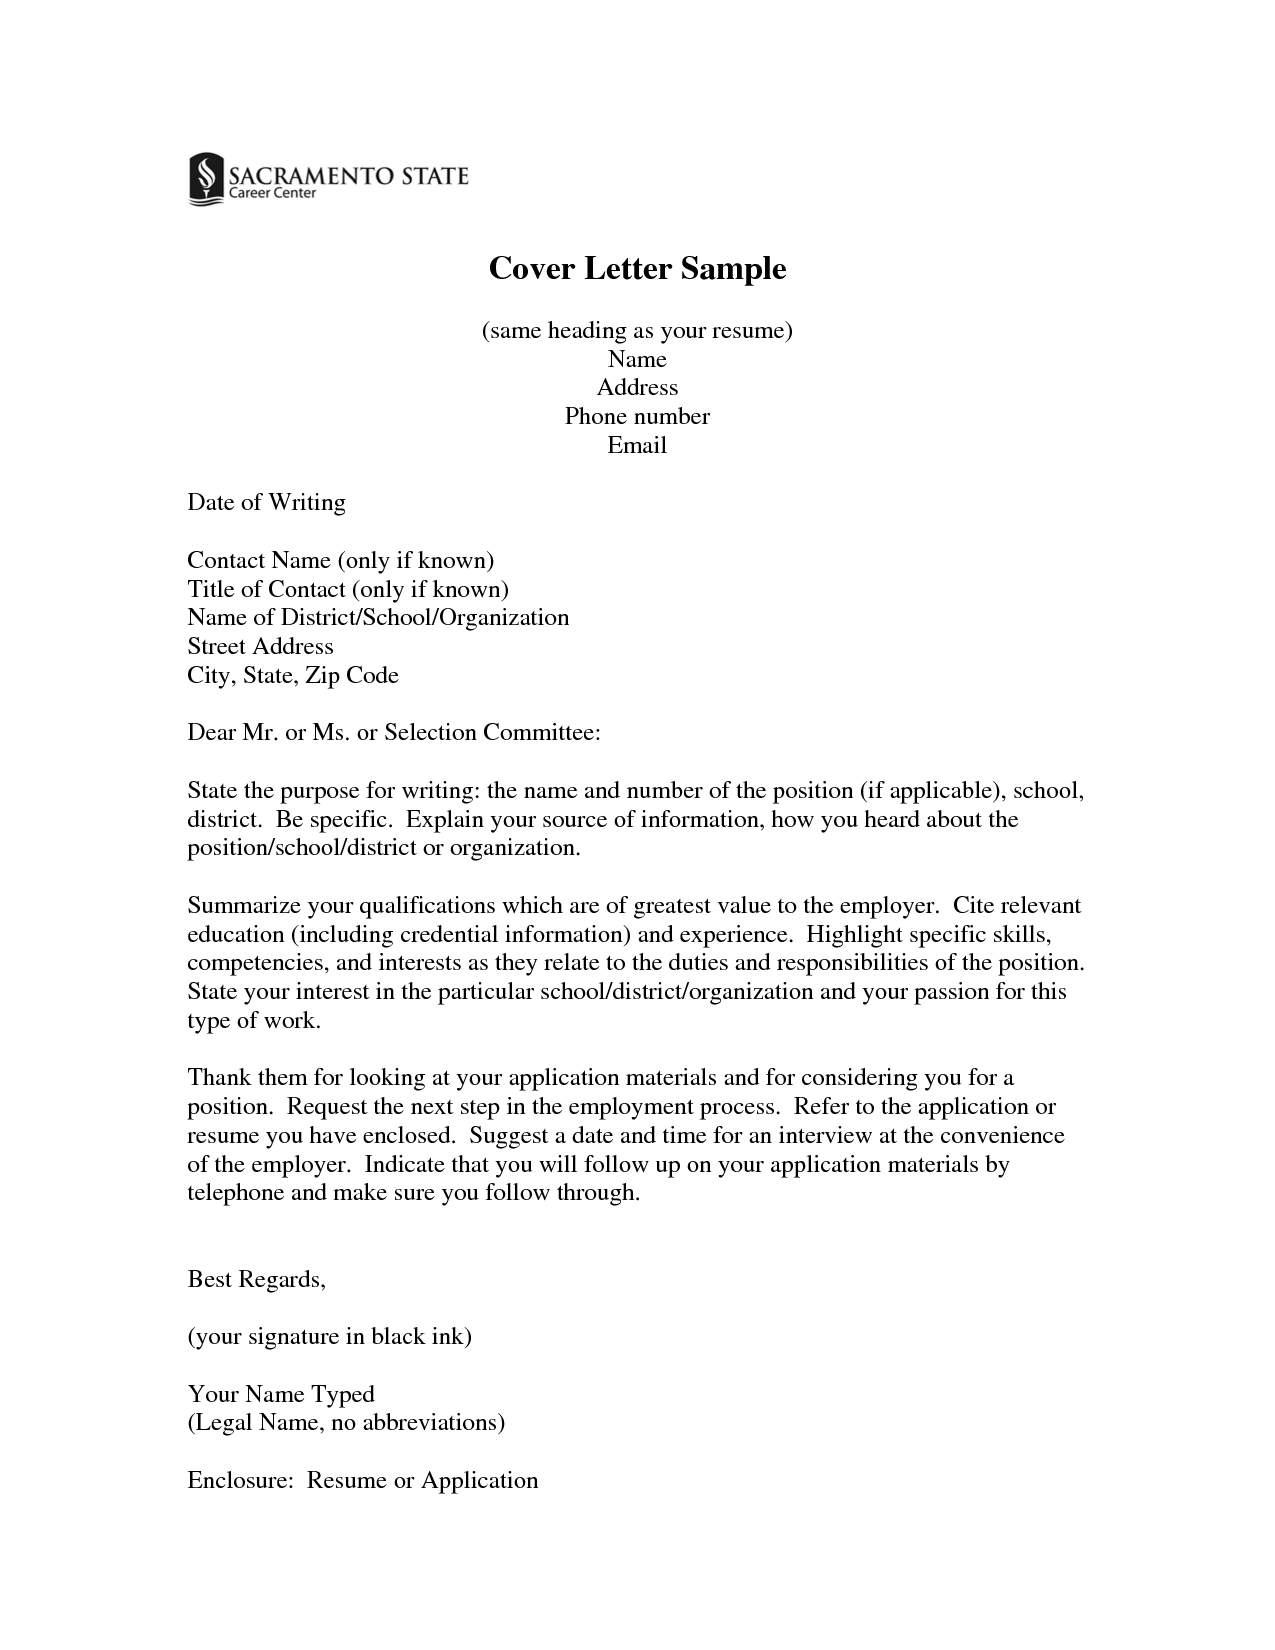 Perfect Same Cover Letters For Resume | Cover Letter Sample Same Heading As Your  Resume Name Address  Cover Letter Name